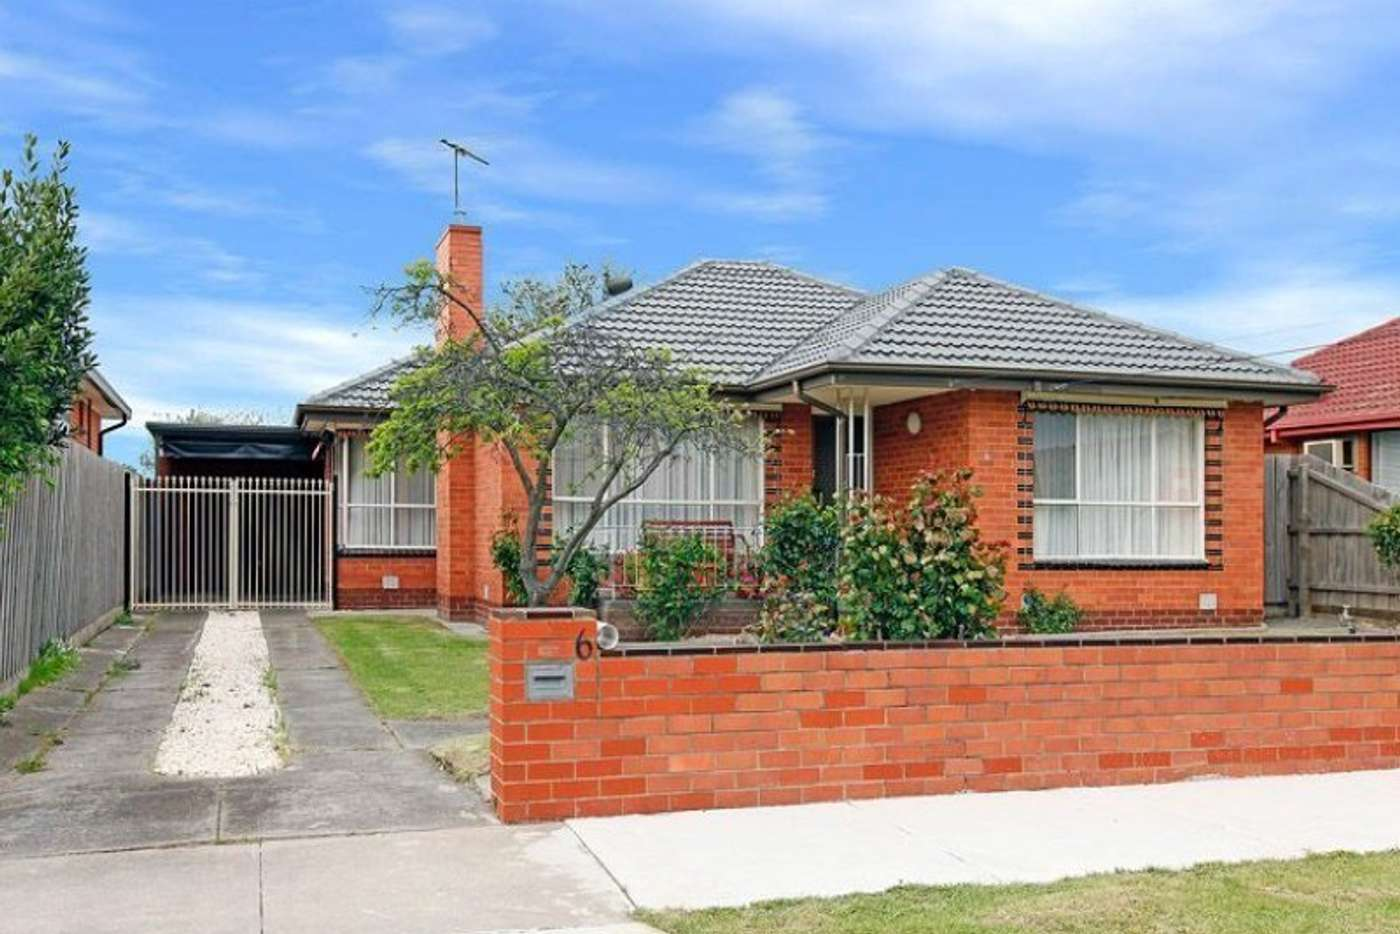 Main view of Homely house listing, 6 Lantana Avenue, Thomastown VIC 3074